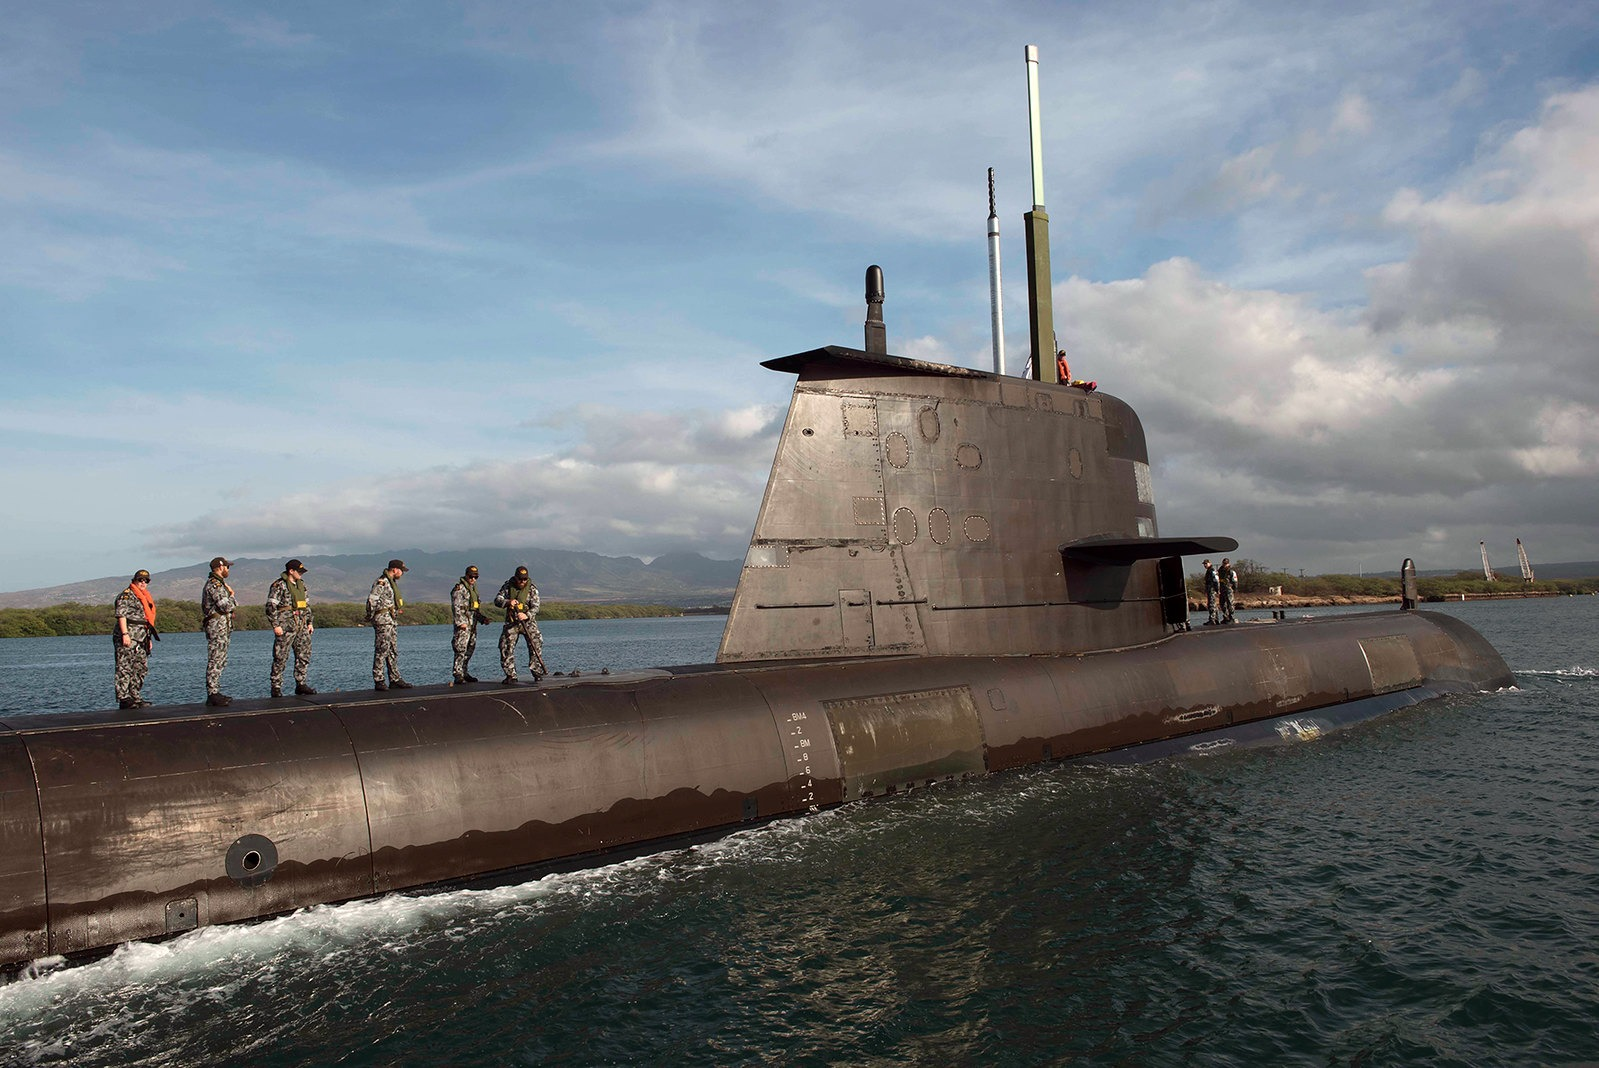 The Real Risks of Australia's Submarine Deal